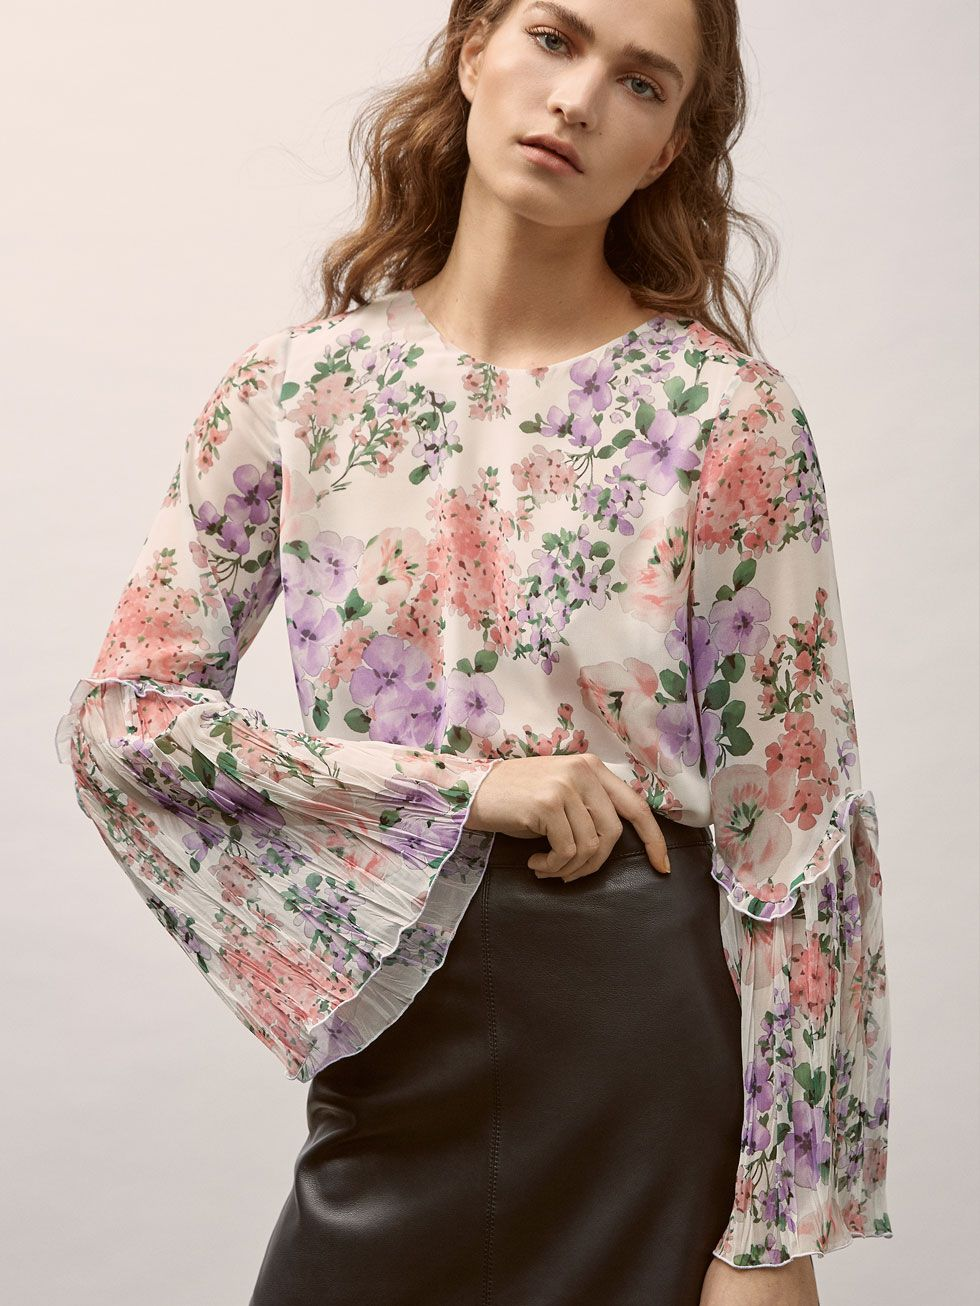 Floral Print Shirt With Ruffle Trims And Pleats Women Massimo Dutti Floral Print Shirt Women Floral Prints